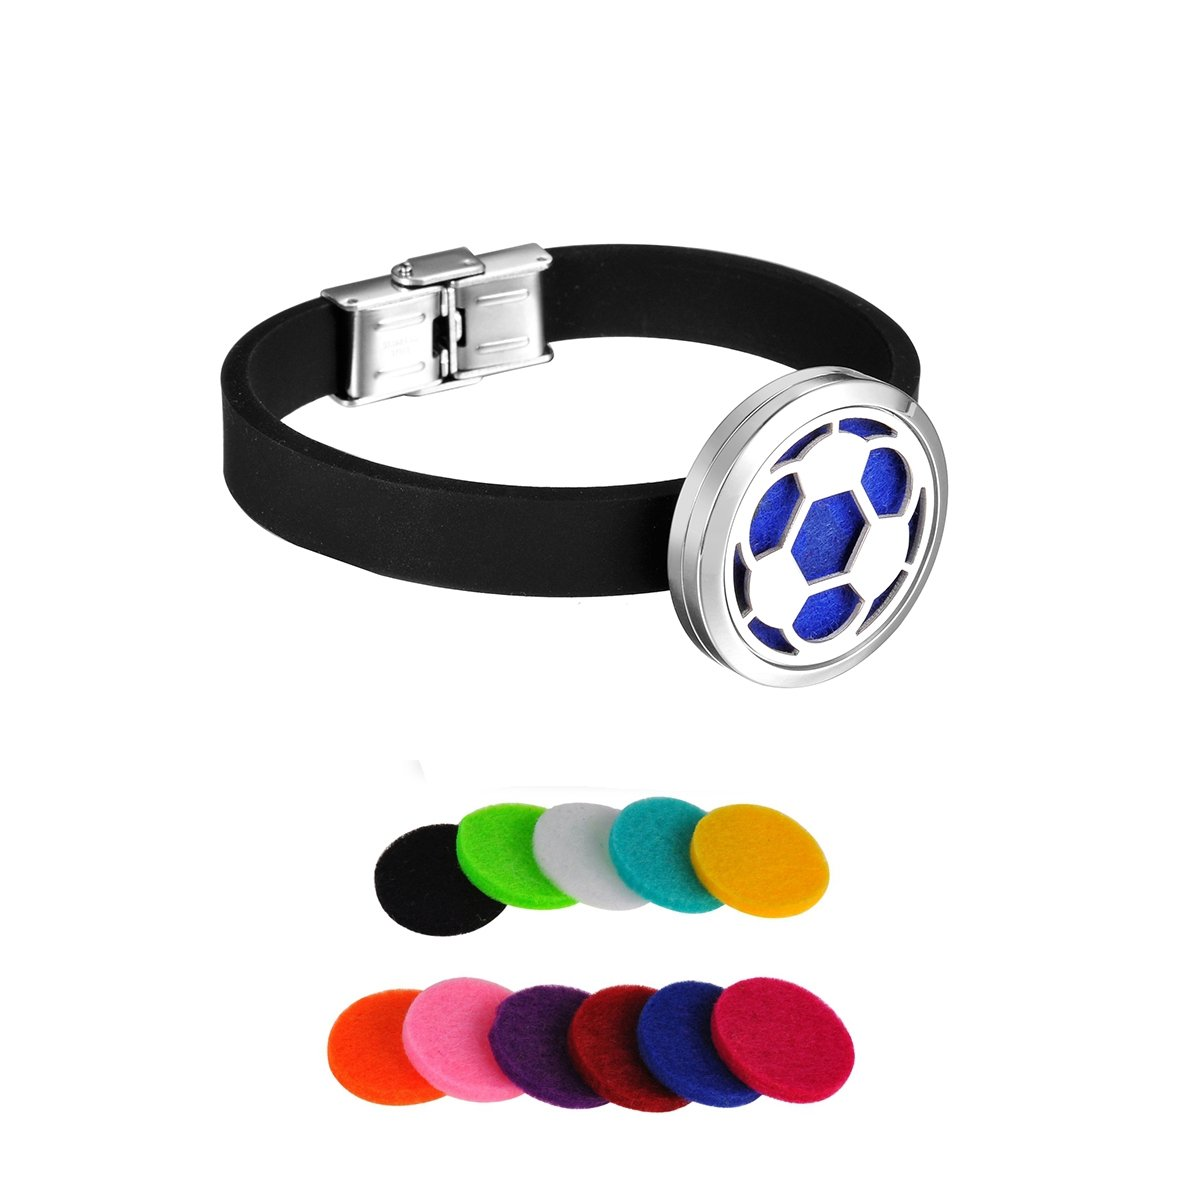 HooAMI Soccer Ball Aromatherapy Essential Oil Diffuser Locket Bracelet Silicone Chain TY EGBETY102641